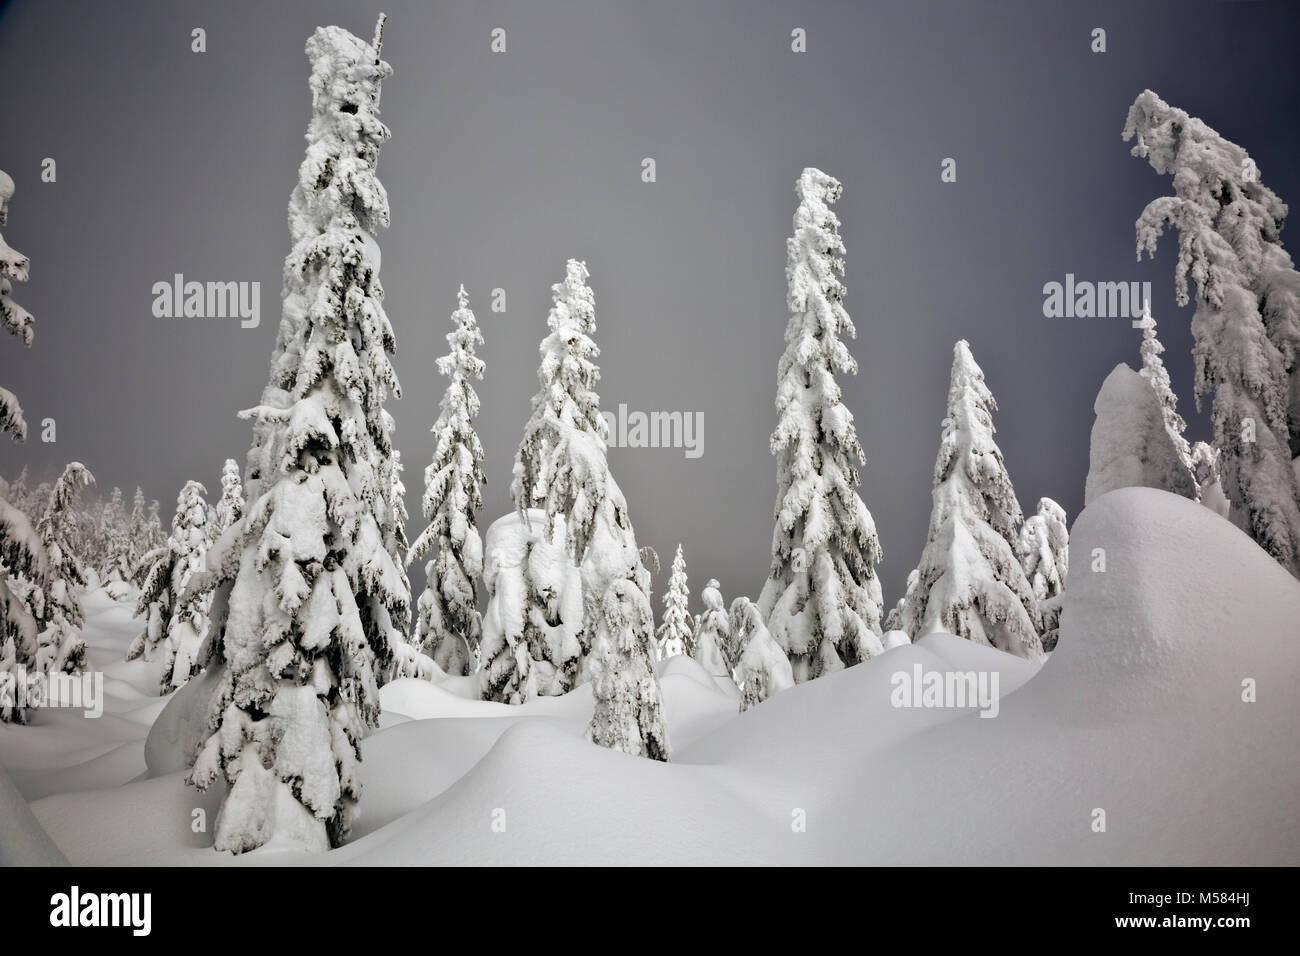 WASHINGTON - The sun on snow covered trees along the cross-country ski route on Amabilis Mountain in the Okanogan - Stock Image